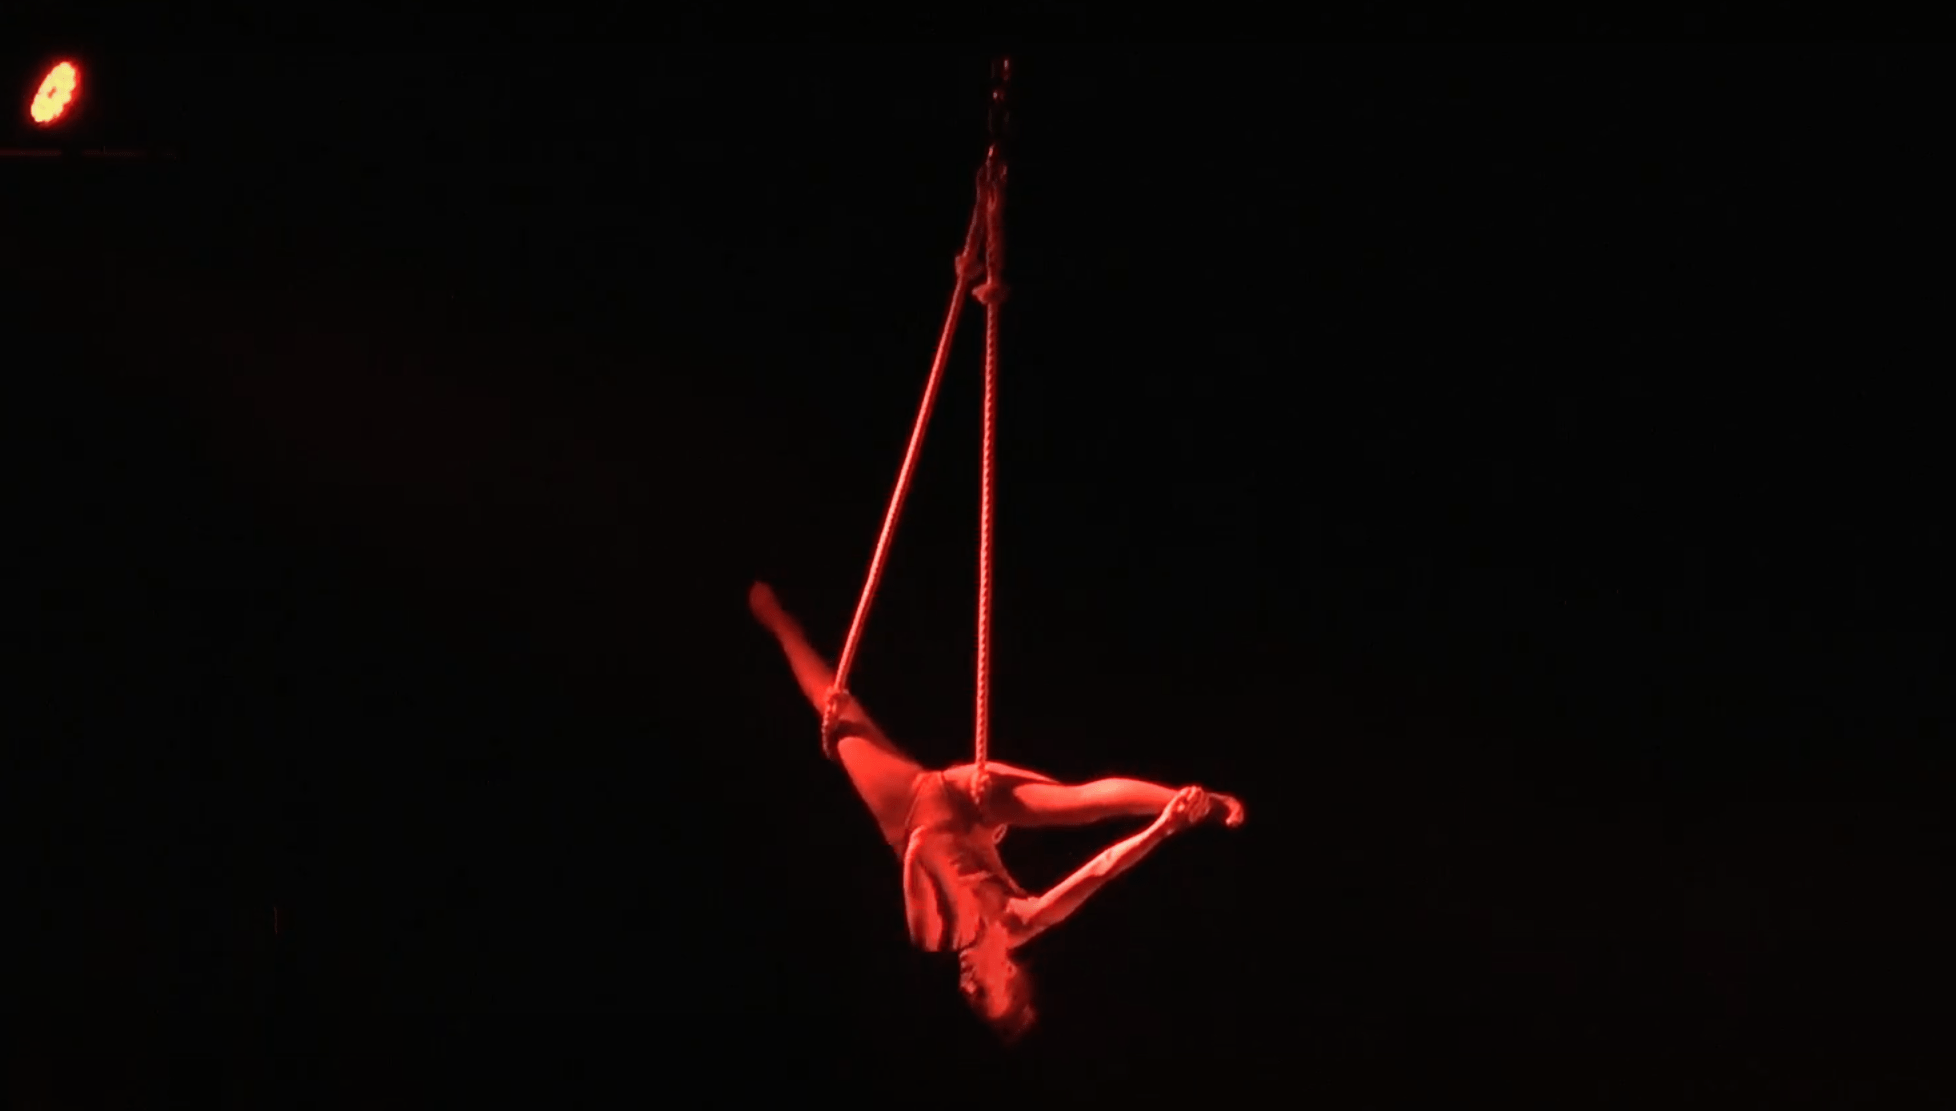 Nix hangs lit red from a trapeze